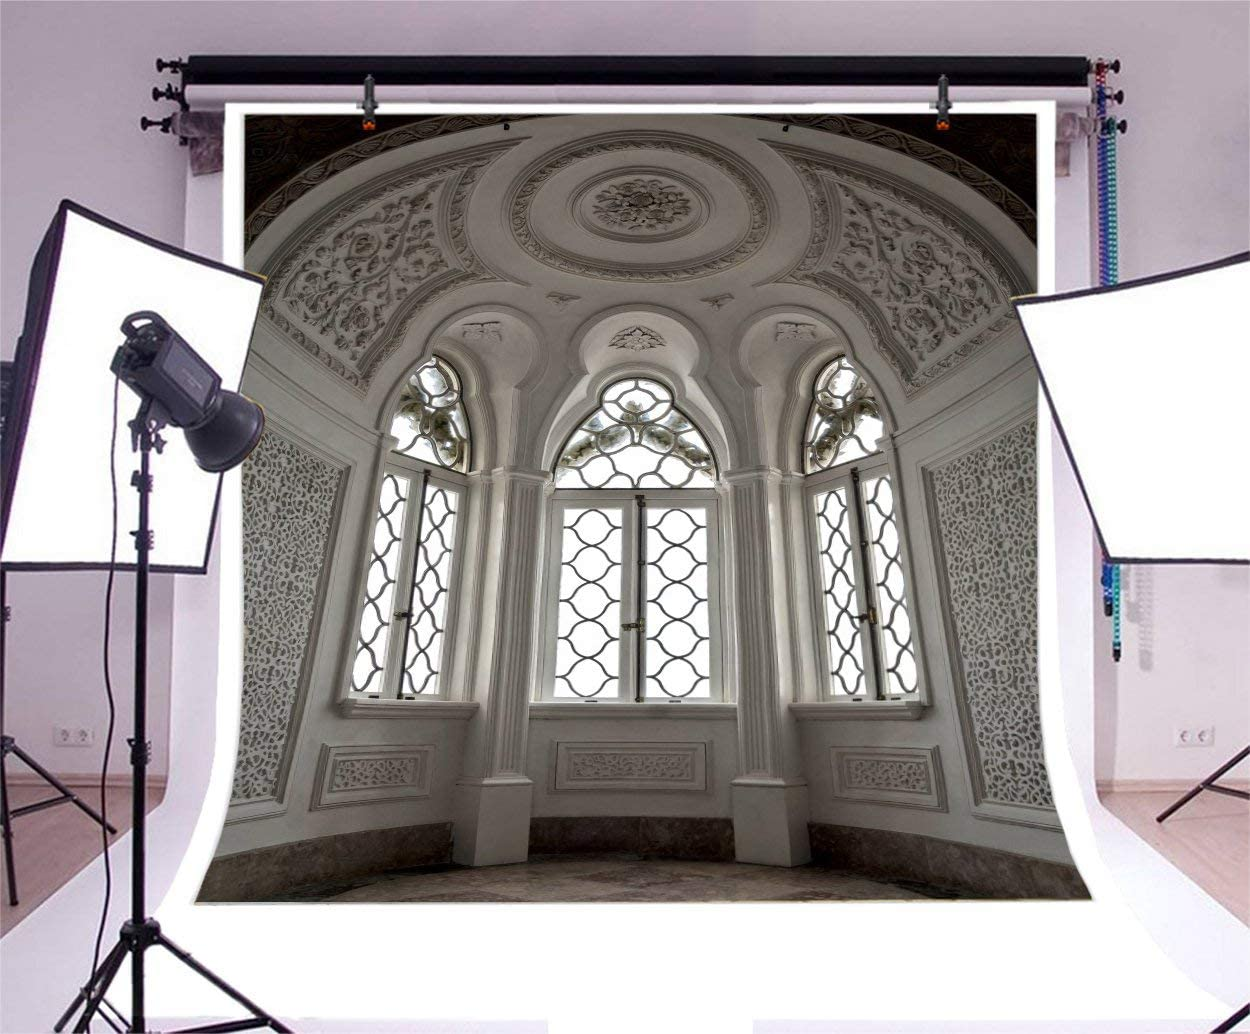 GoEoo 10x10ft Ancient Mediaeval Church Interior Backdrop Holland Place Worship Stone Arch Cathedral Pillar Catholicism Abbey Column Corridor Photography Background Photo Studio Props